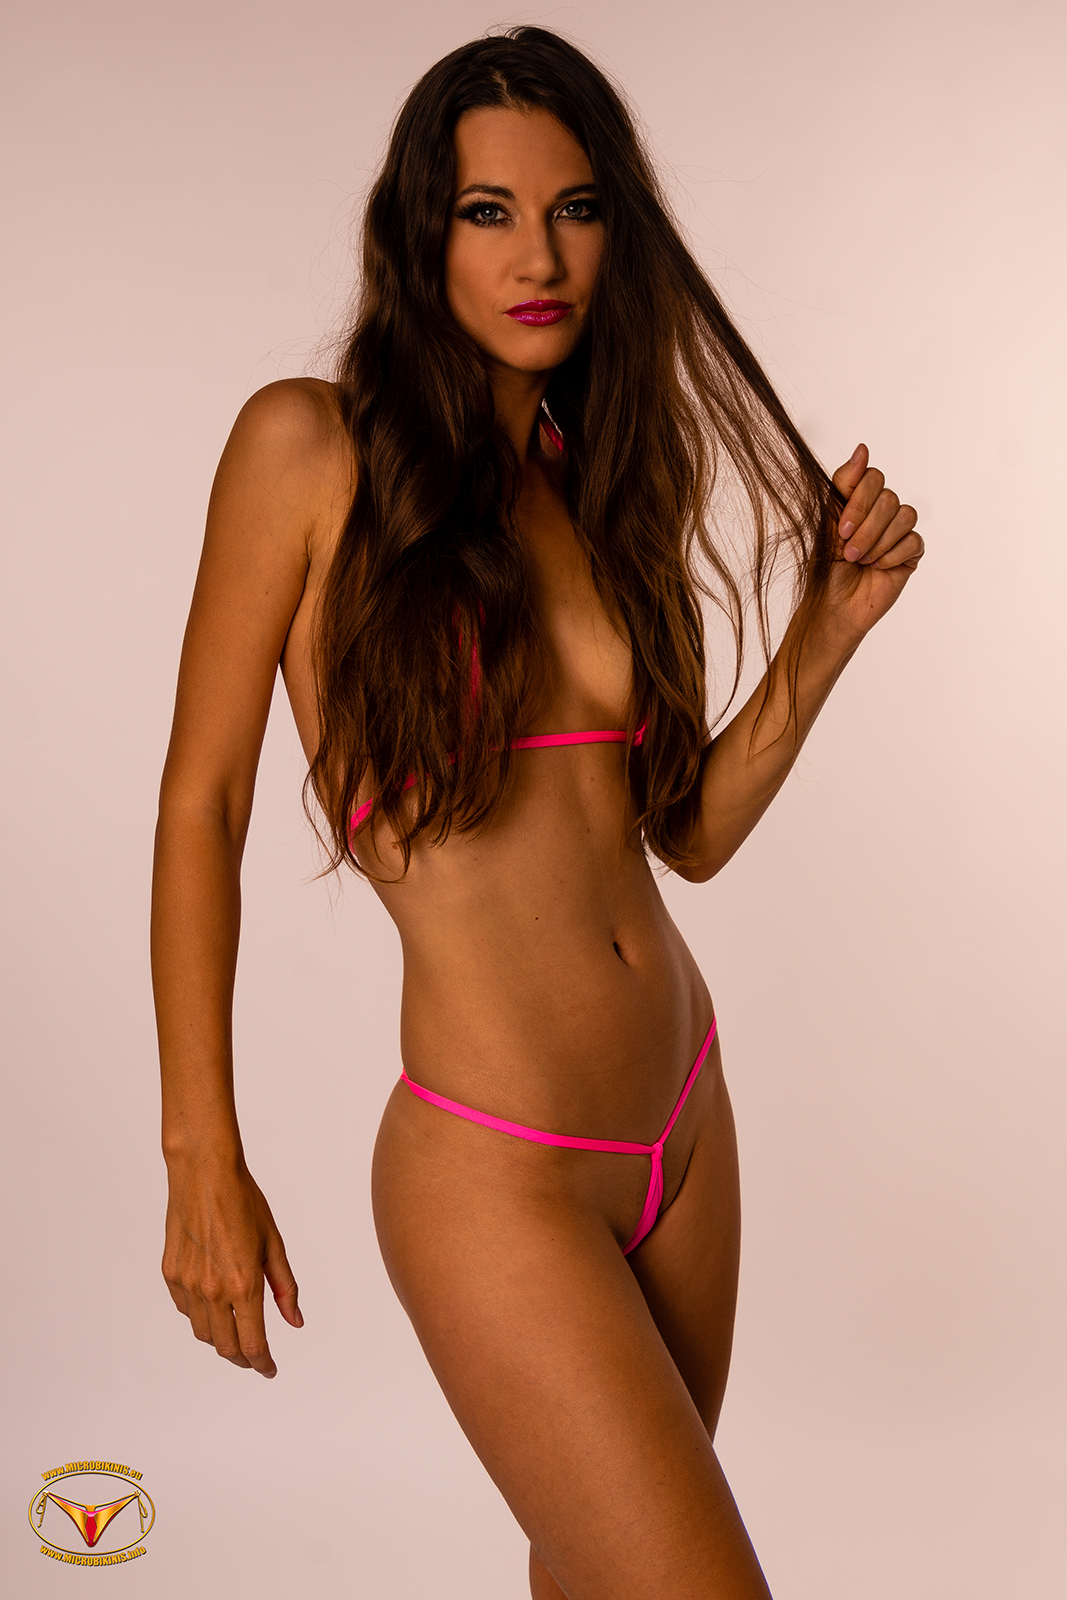 Microbikinis Bikinigirl, Micro Bikini Model Lauren Crist Bikinigirl from the Czech Republic